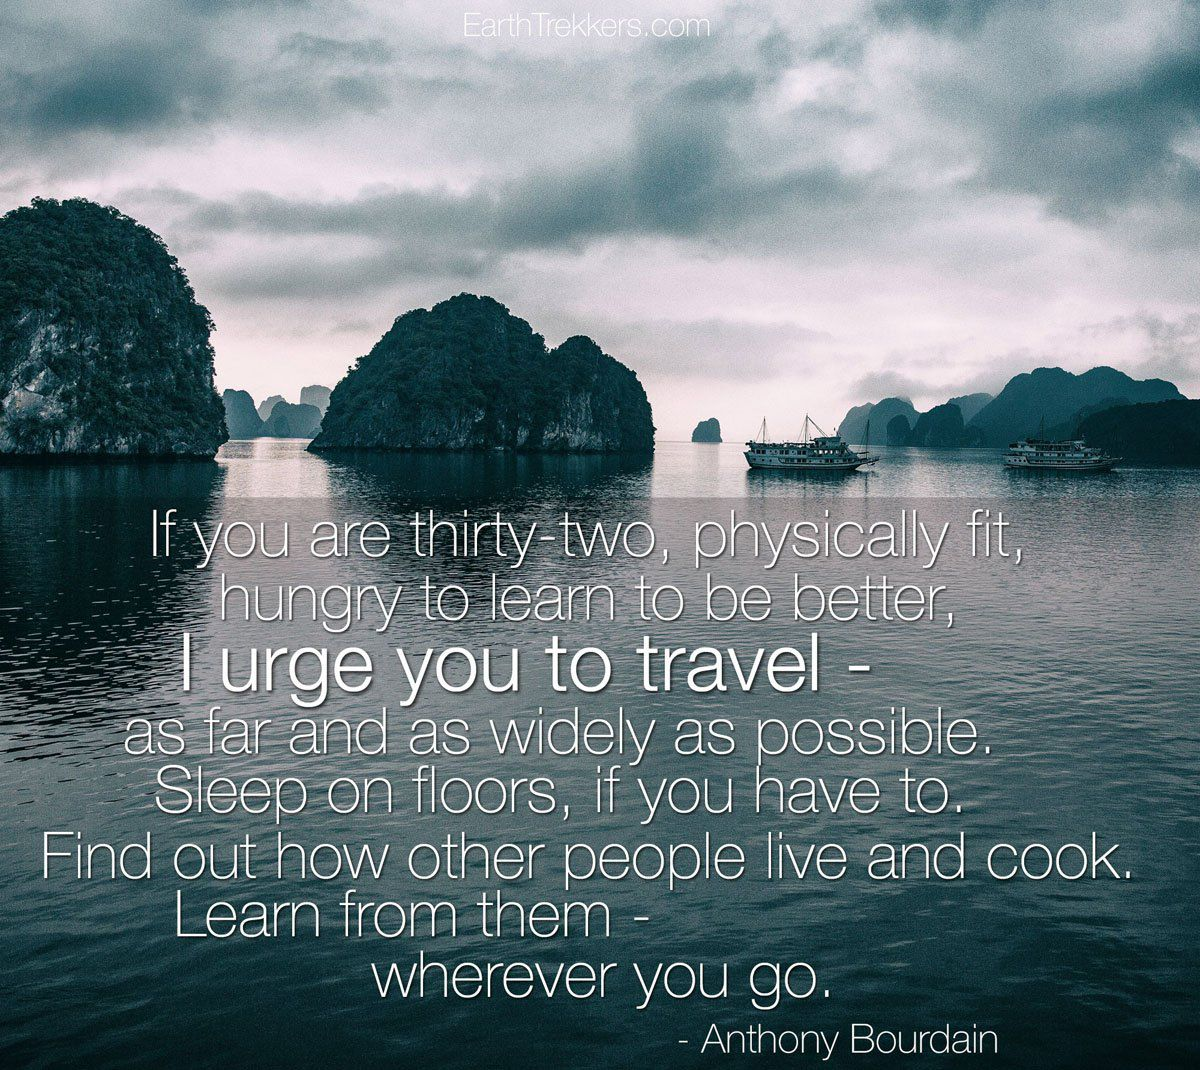 Anthony Bourdain Travel Widely Quote